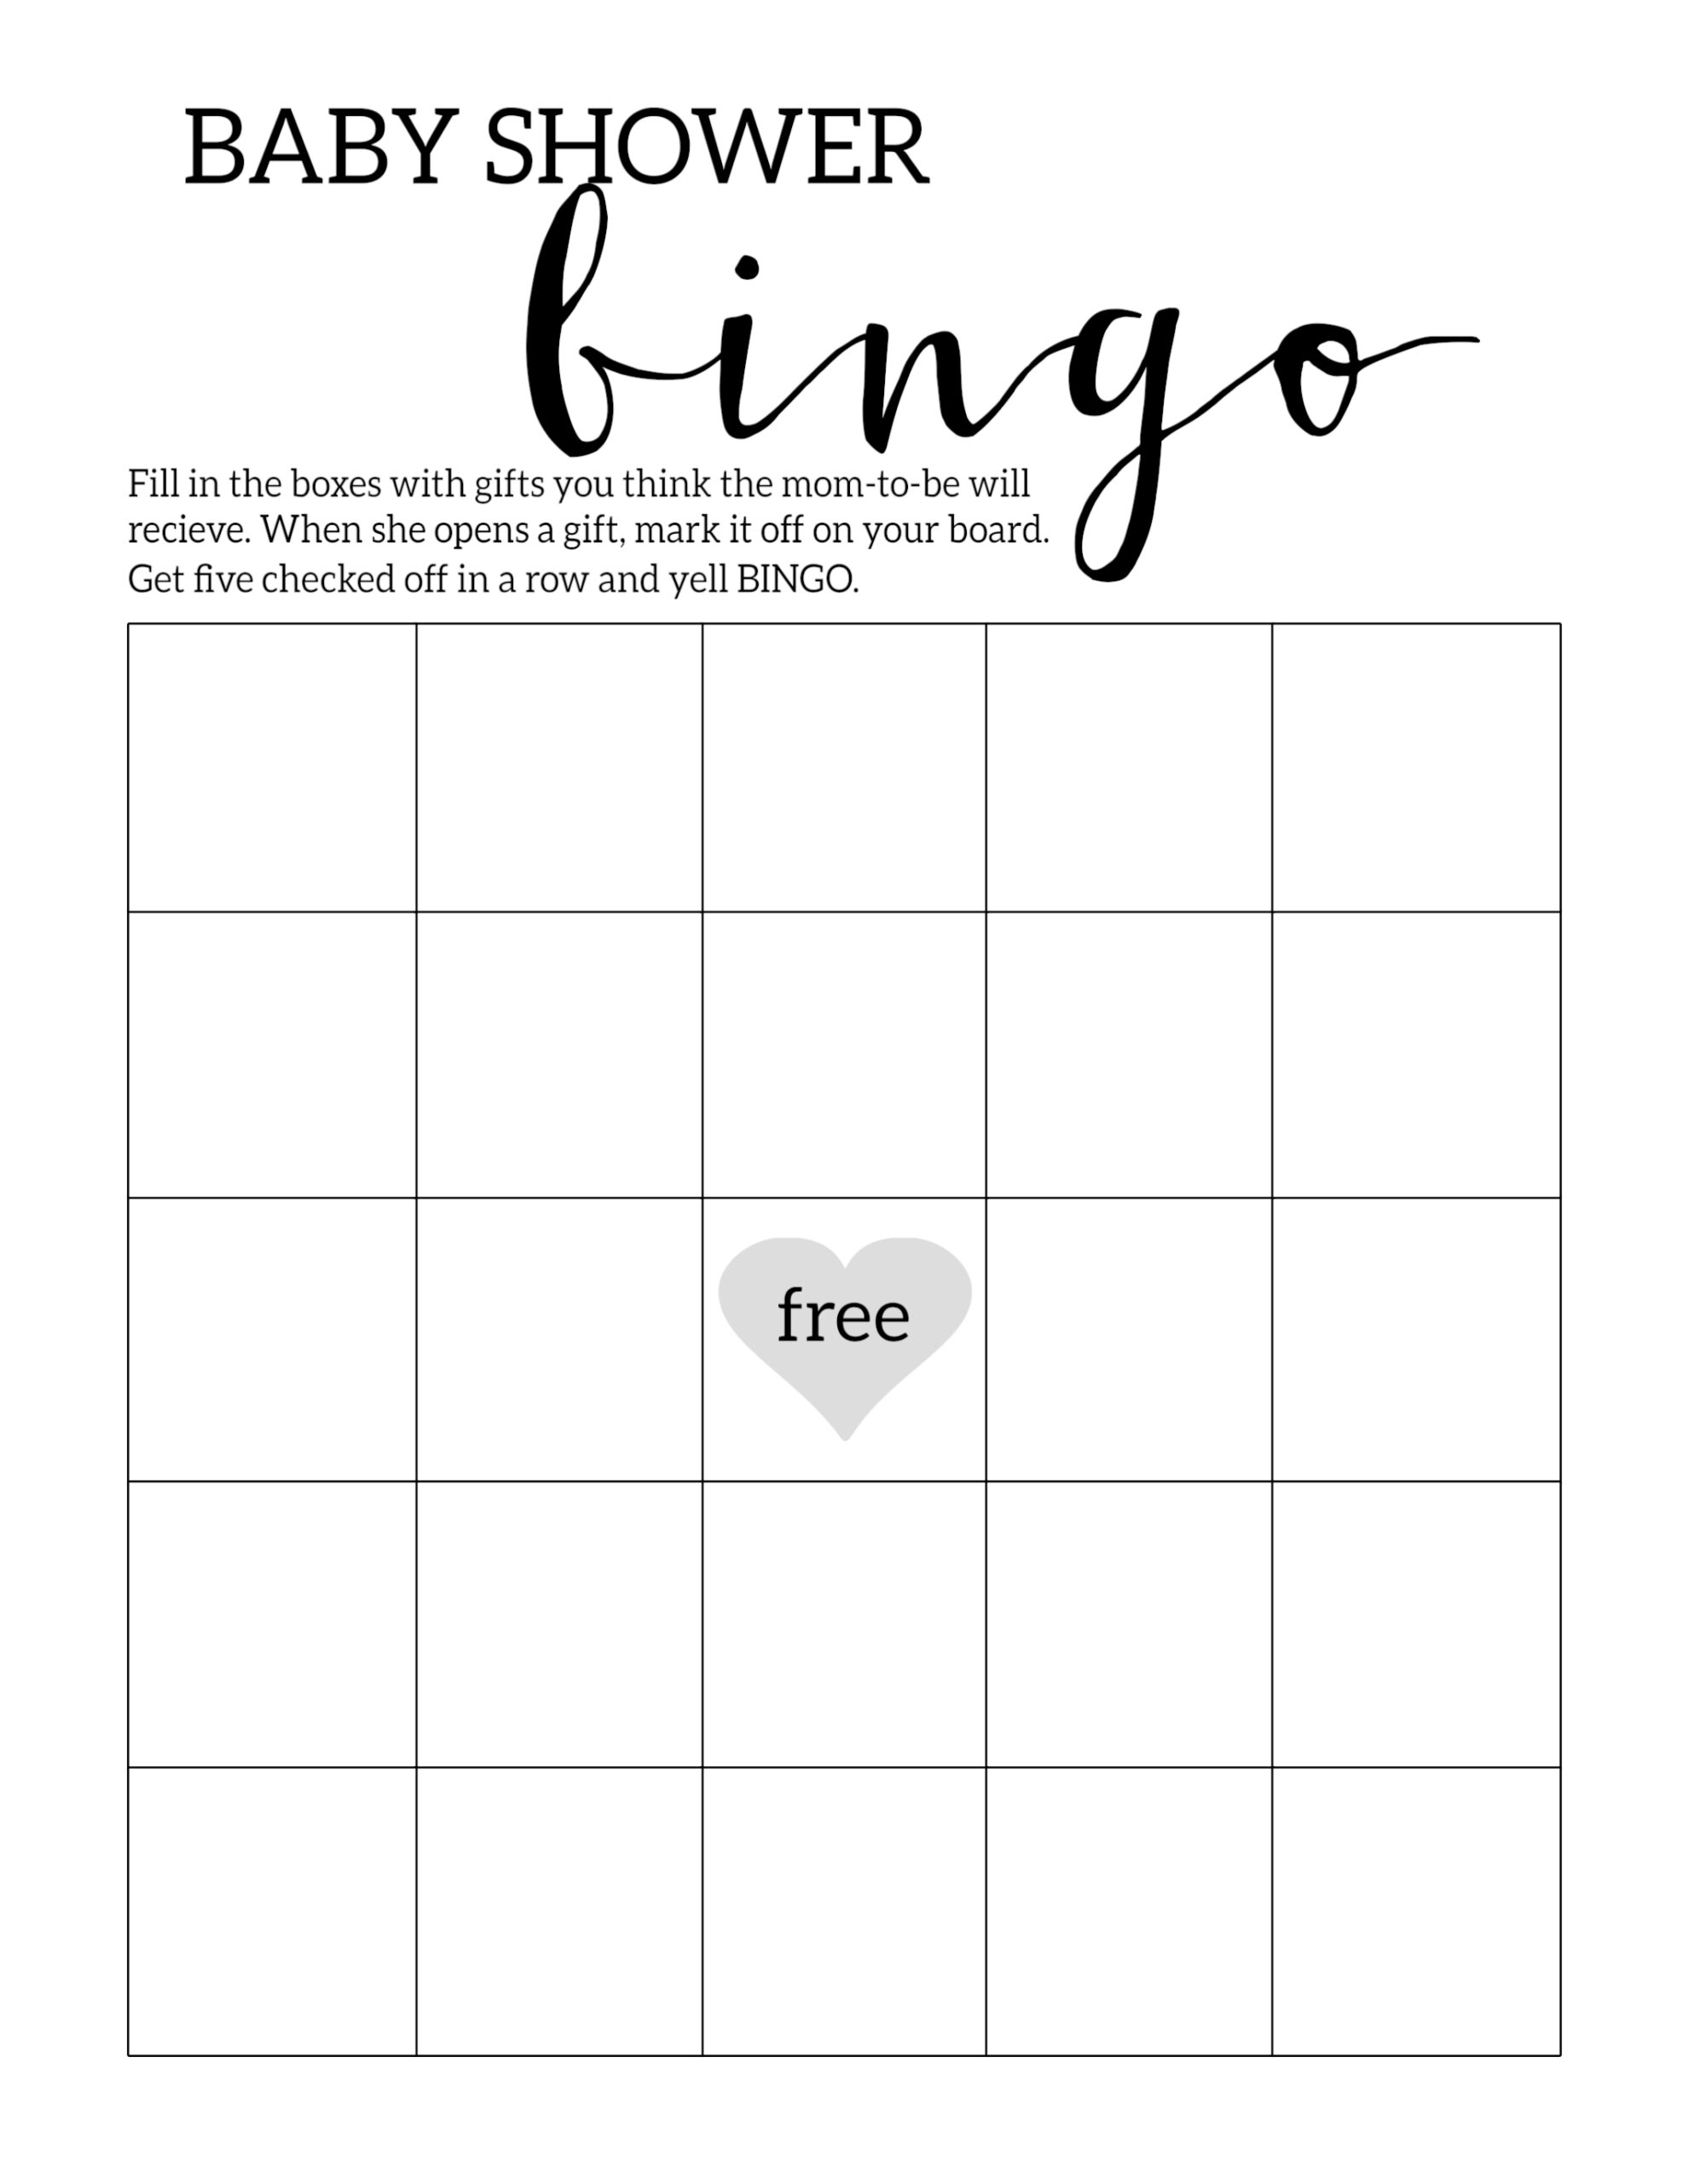 Baby Shower Bingo Game Template Free Printable